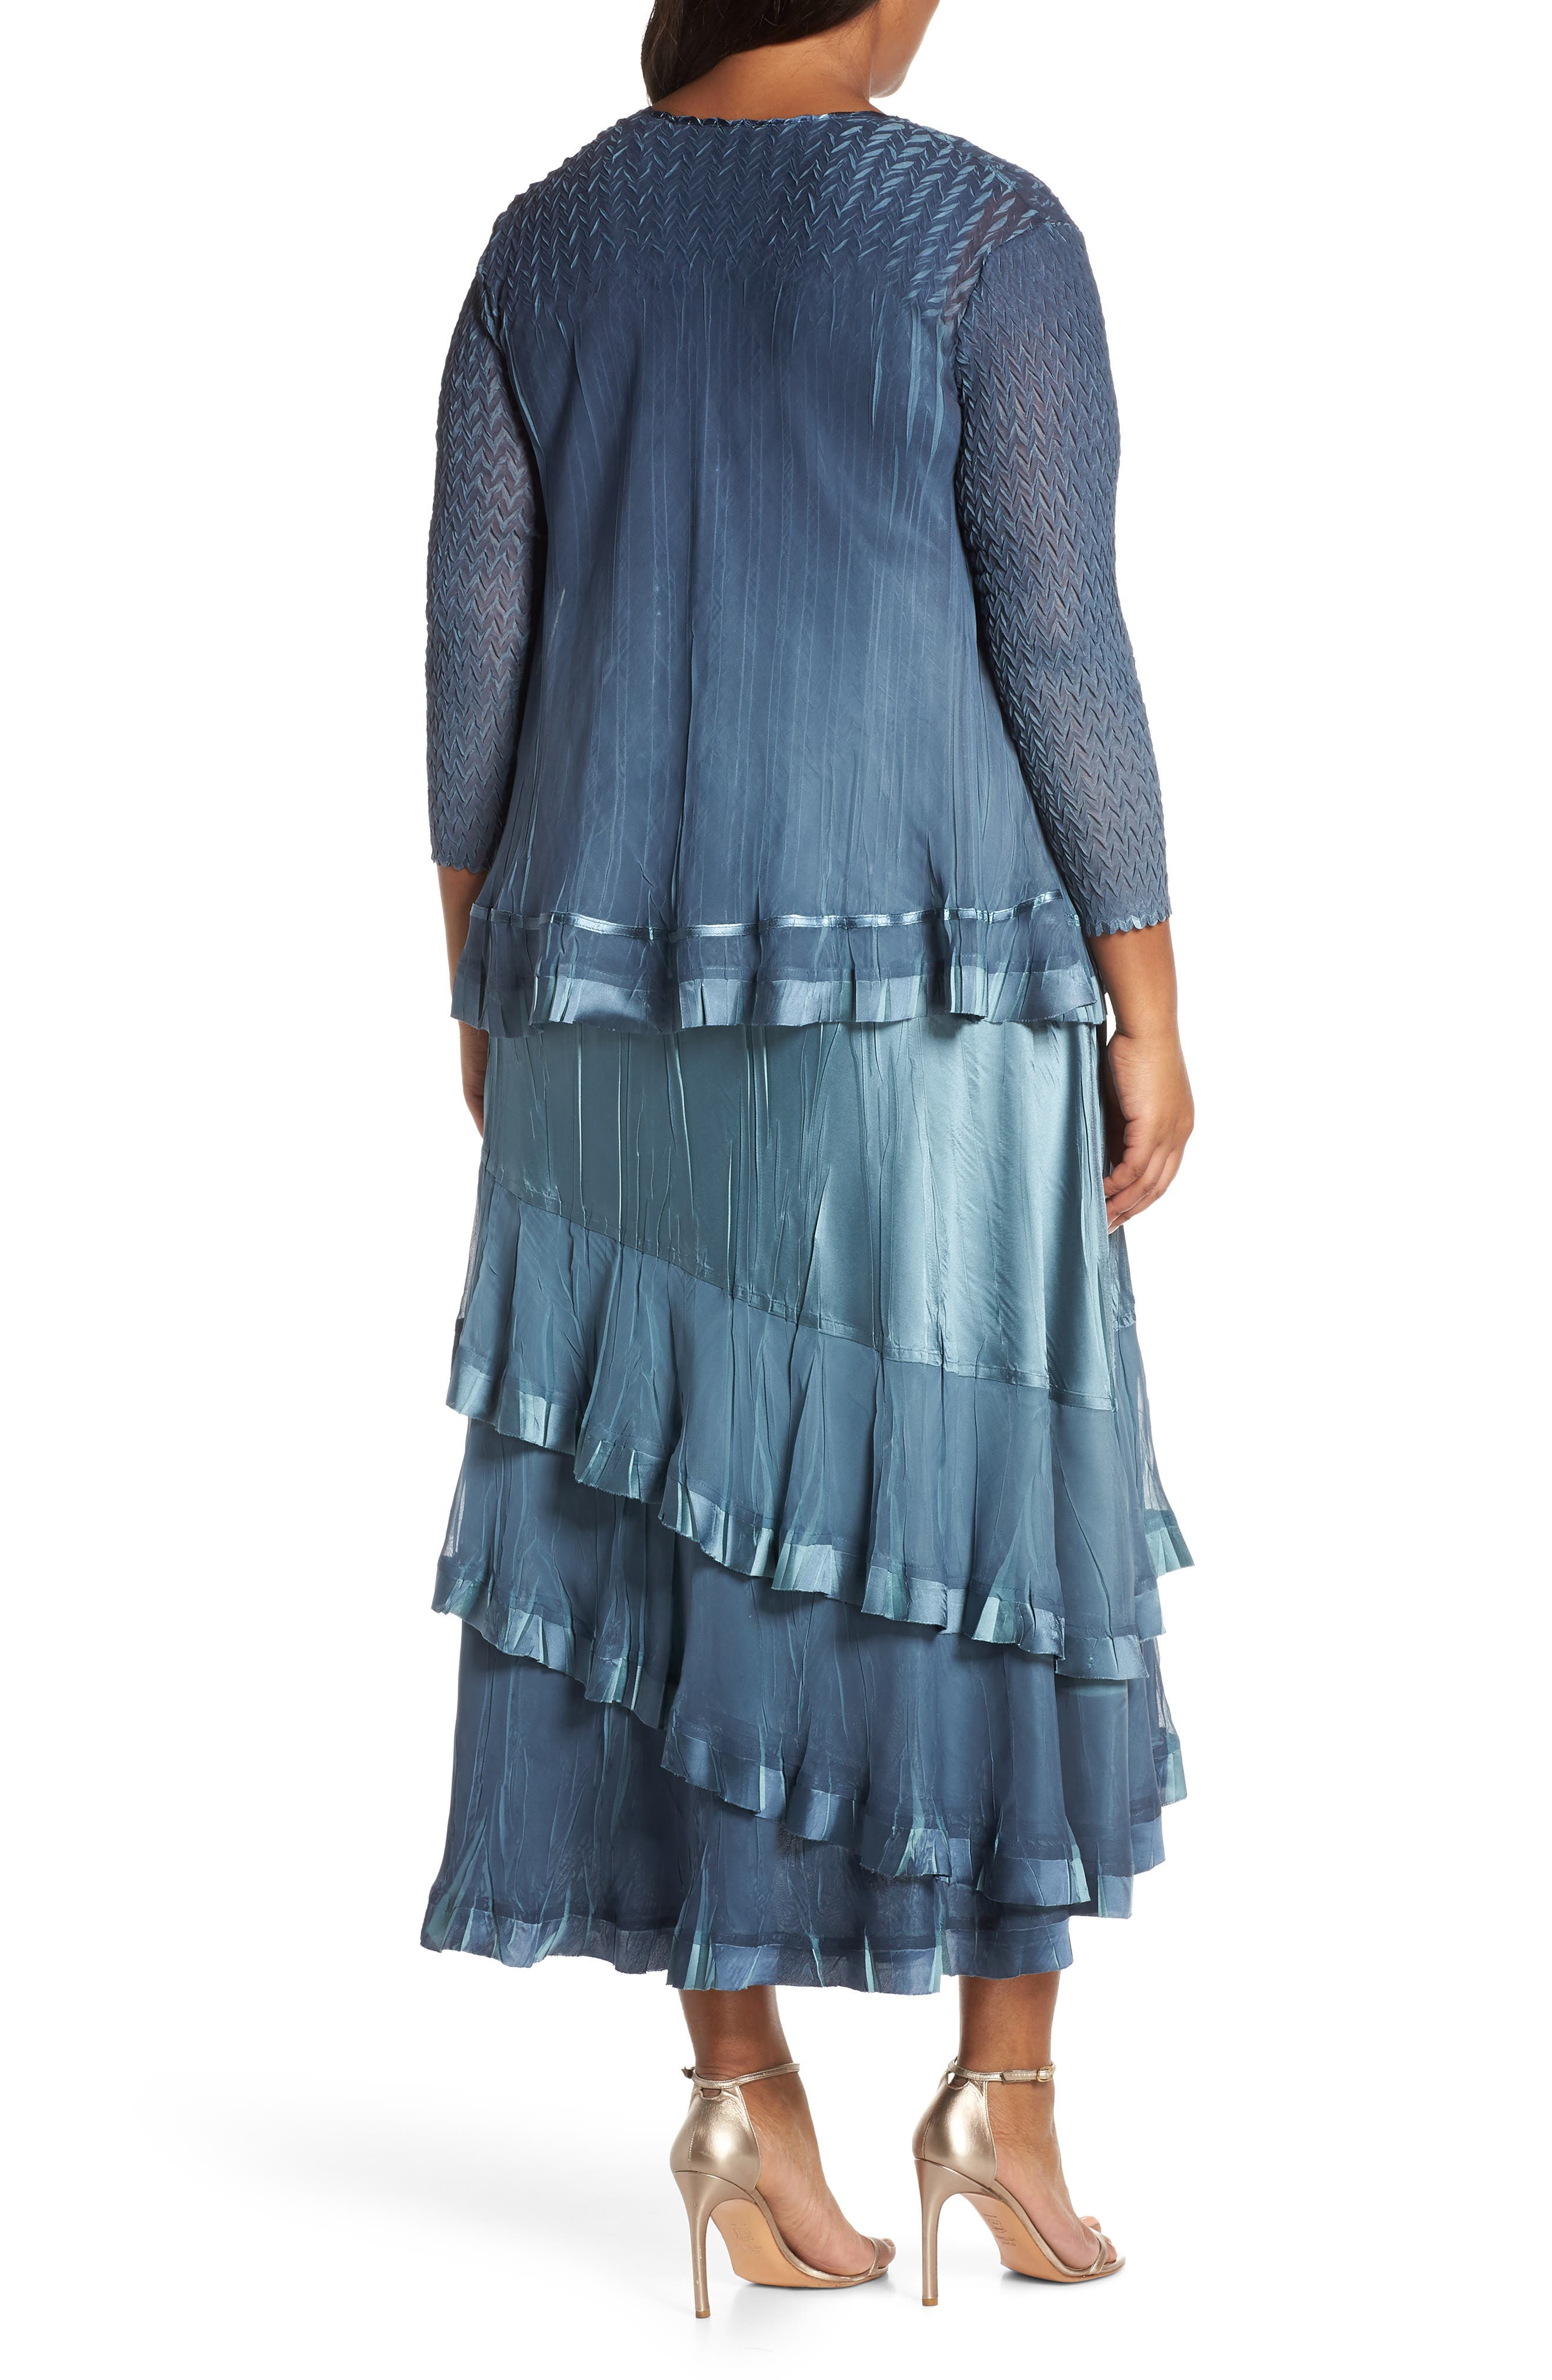 KOMAROV, Charmeuse Cocktail Dress with Jacket, Alternate thumbnail 2, color, SILVER BLUE OMBRE